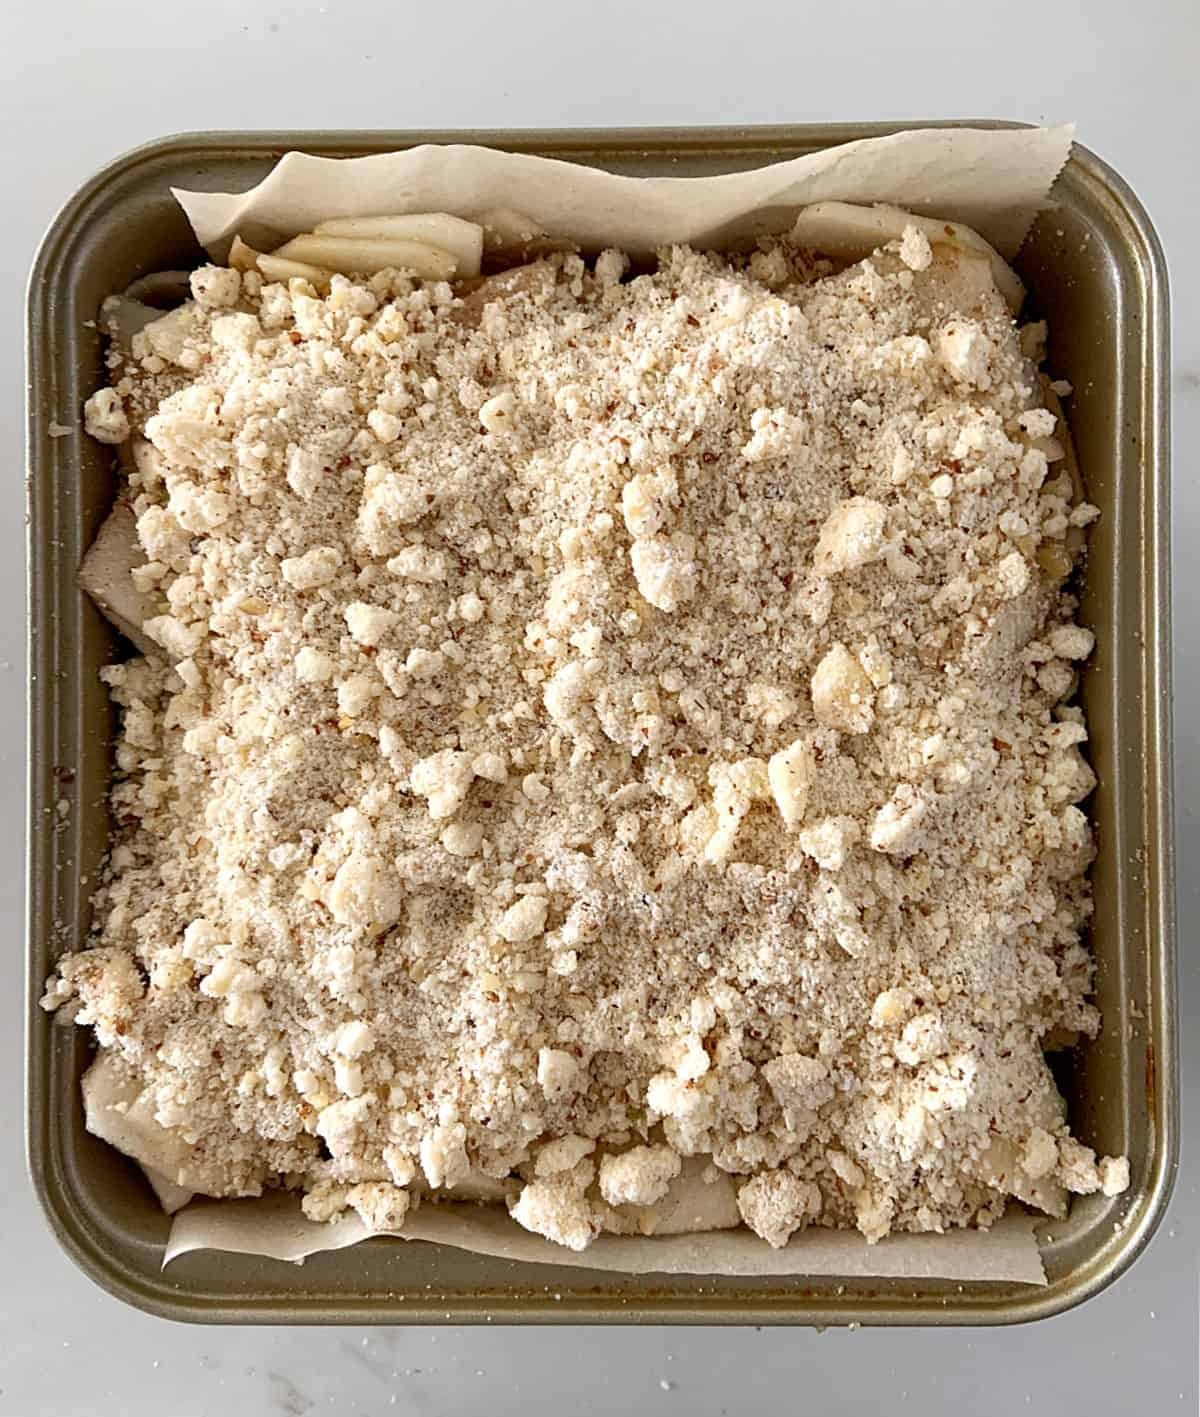 Raw crumble topping on square pan